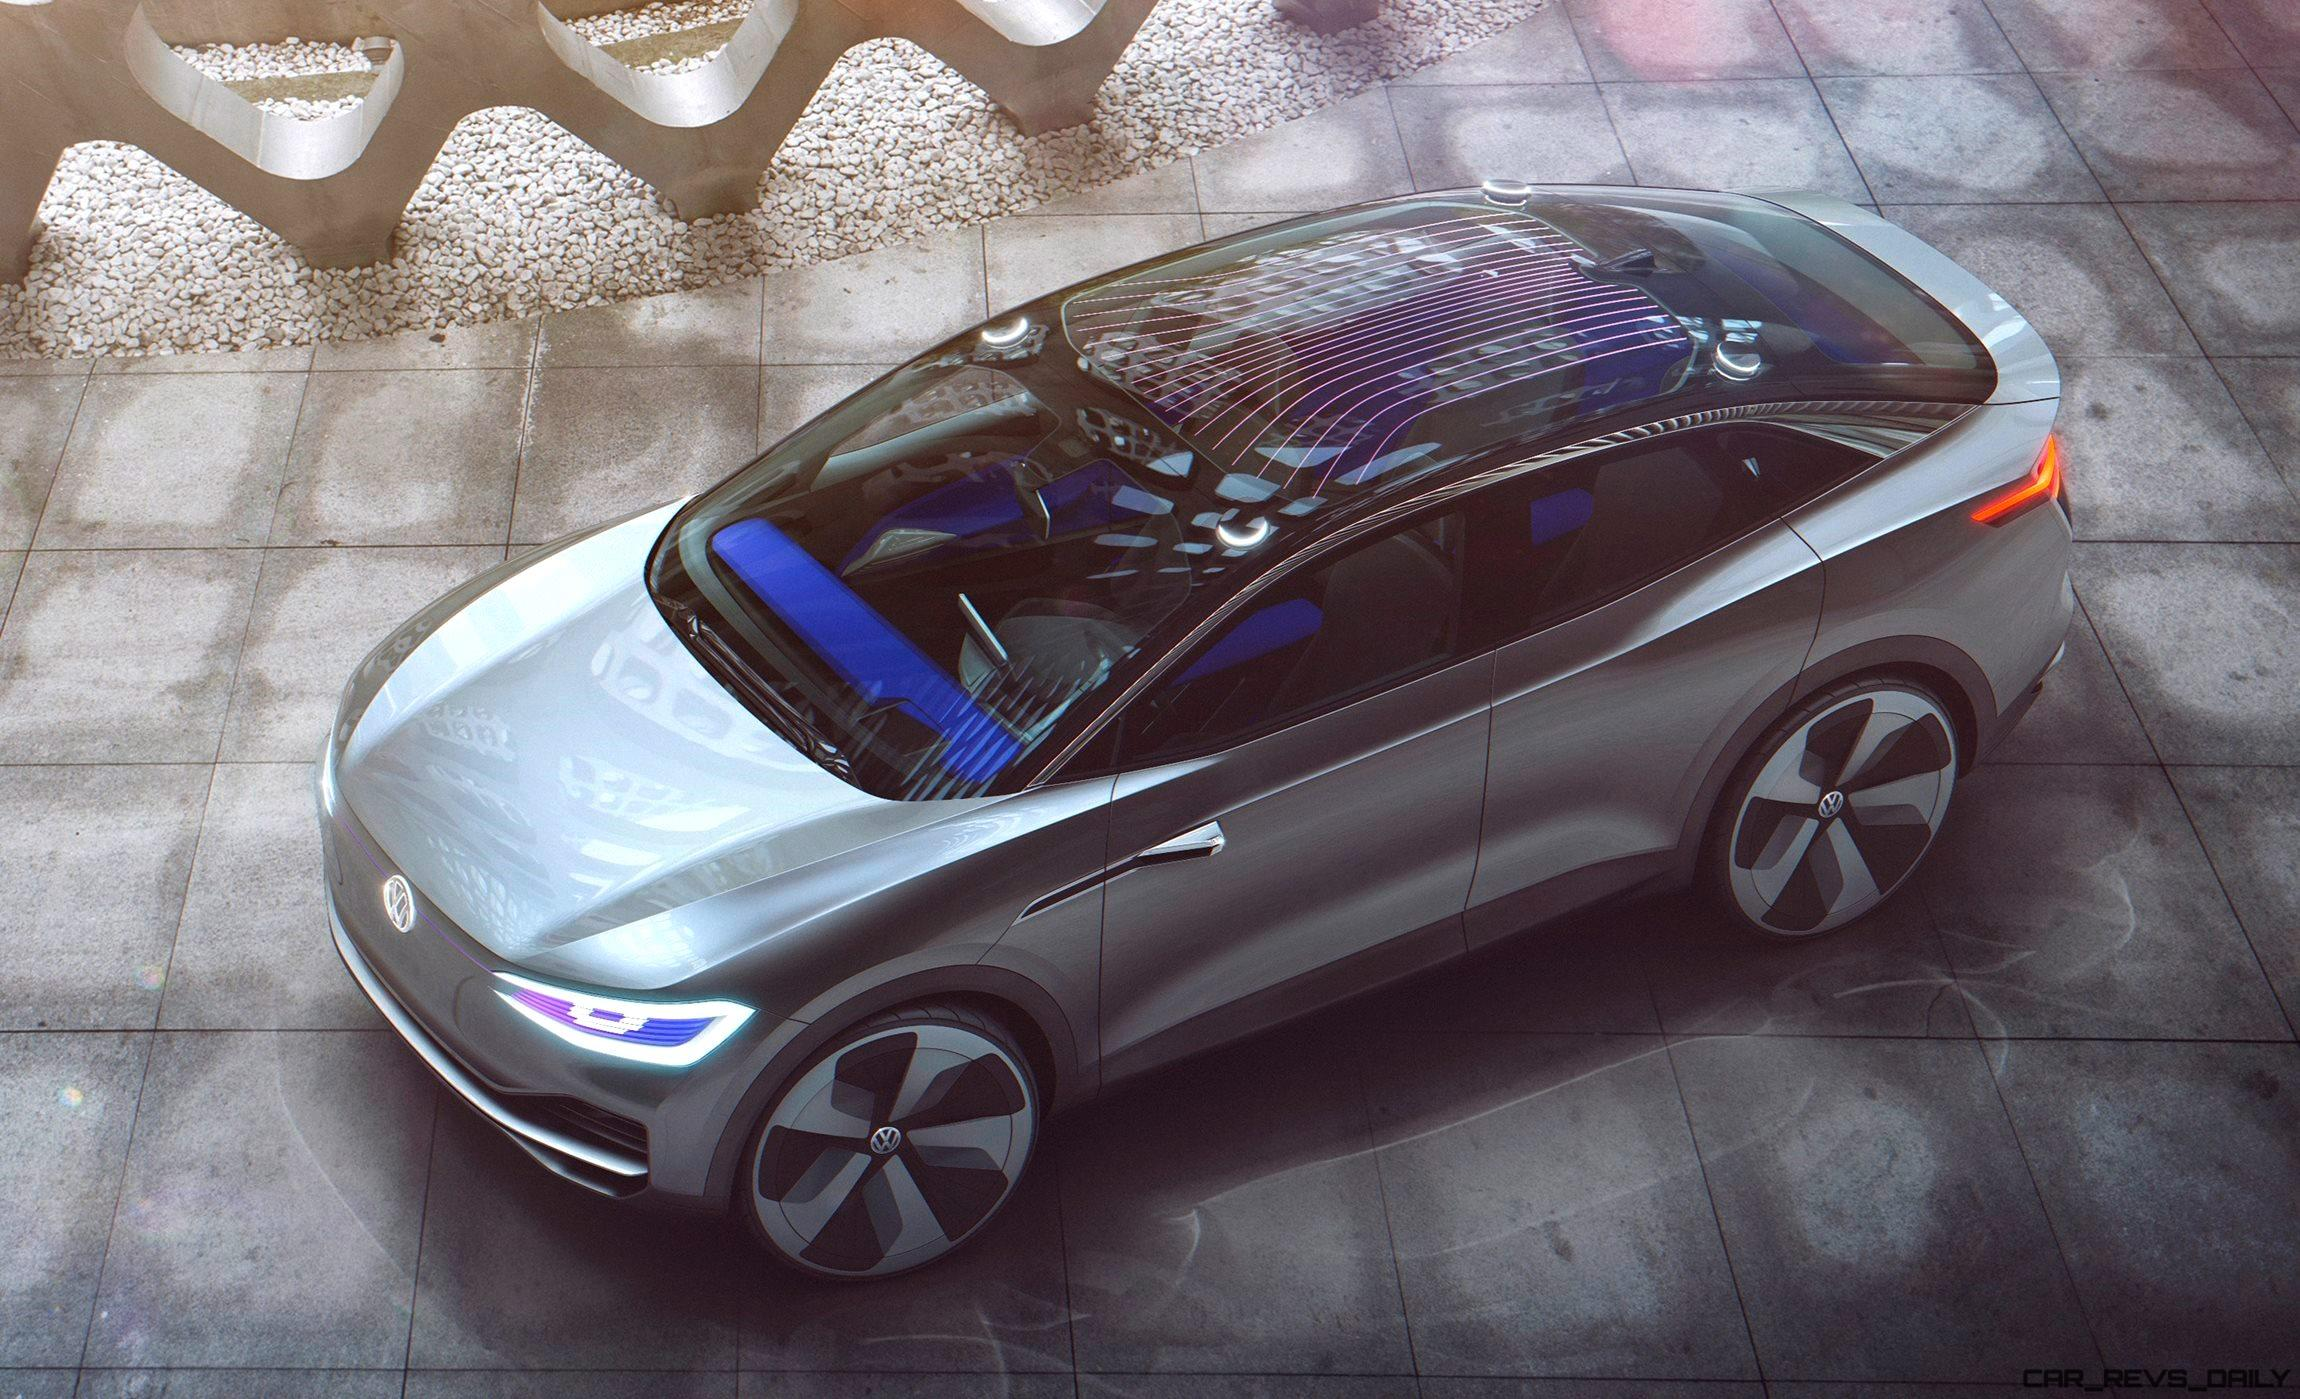 2017 VW ID Crozz Concept - Goofy Preview of Future E-SUV